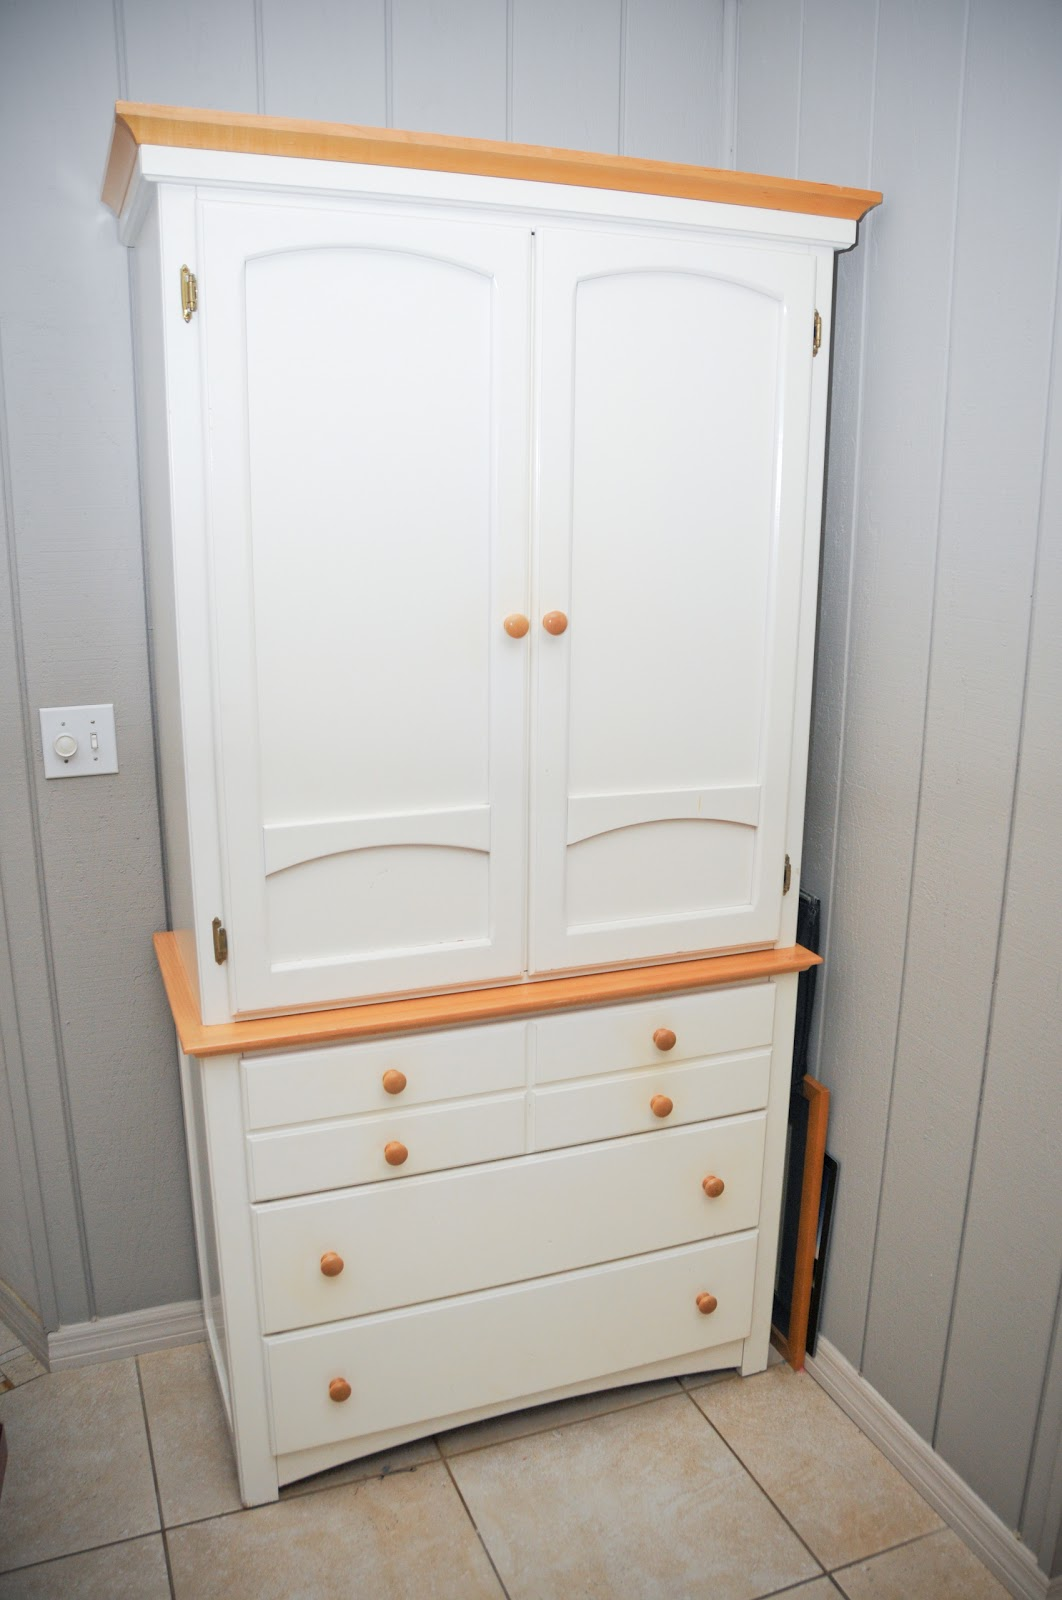 Sarasota Craigslist Things For Sale White Wood Dresser